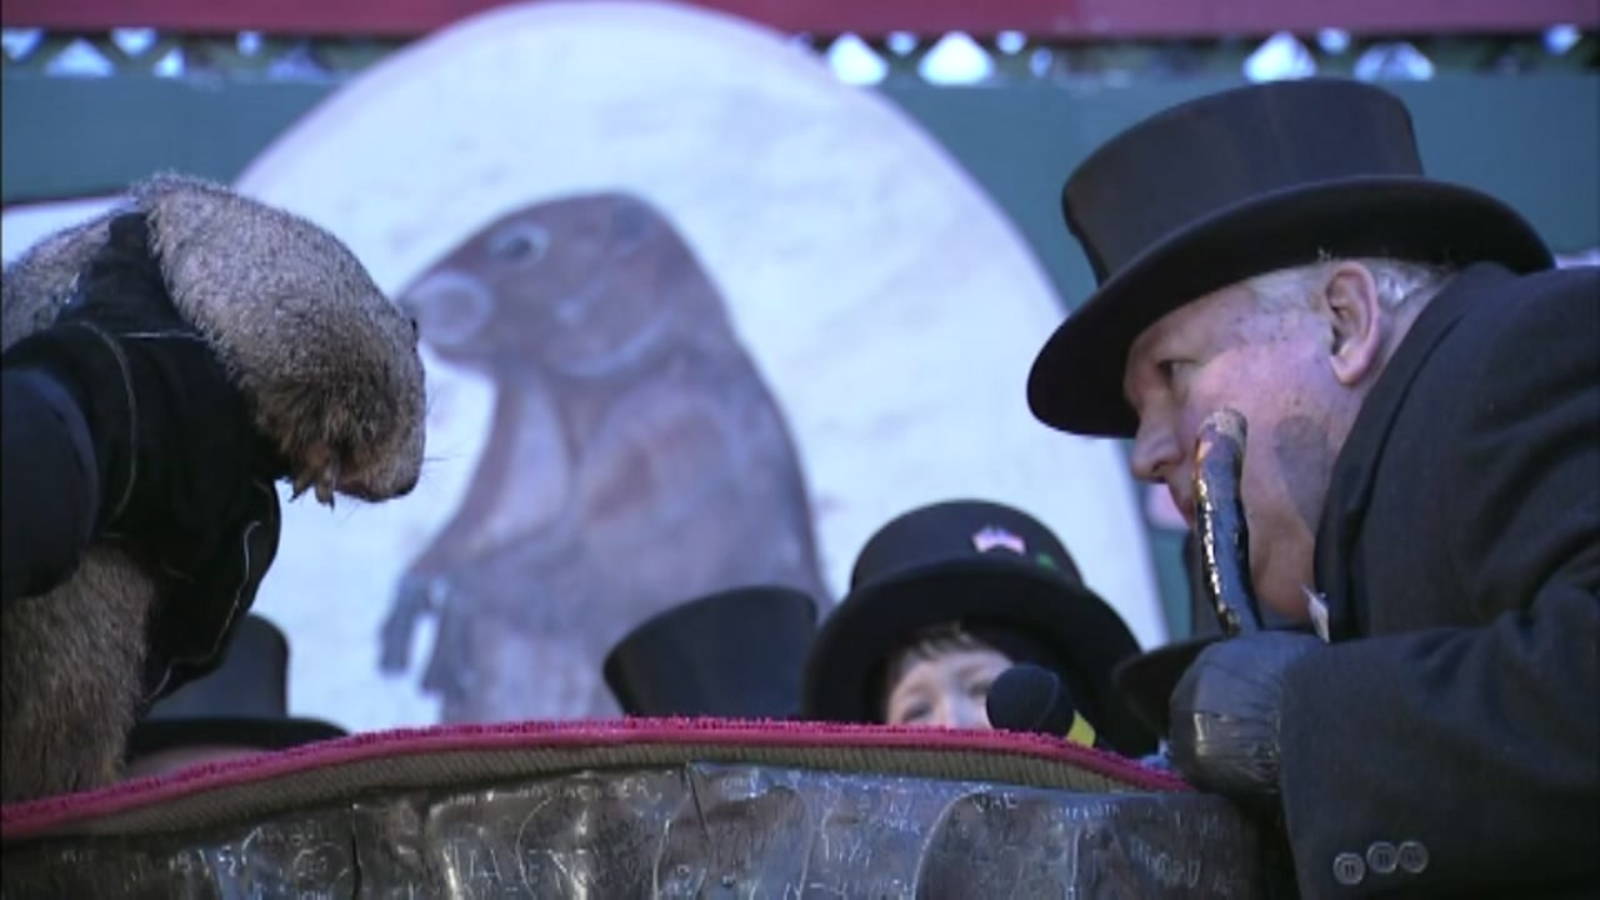 It's Groundhog Day! Punxsutawney Phil did not see his ...